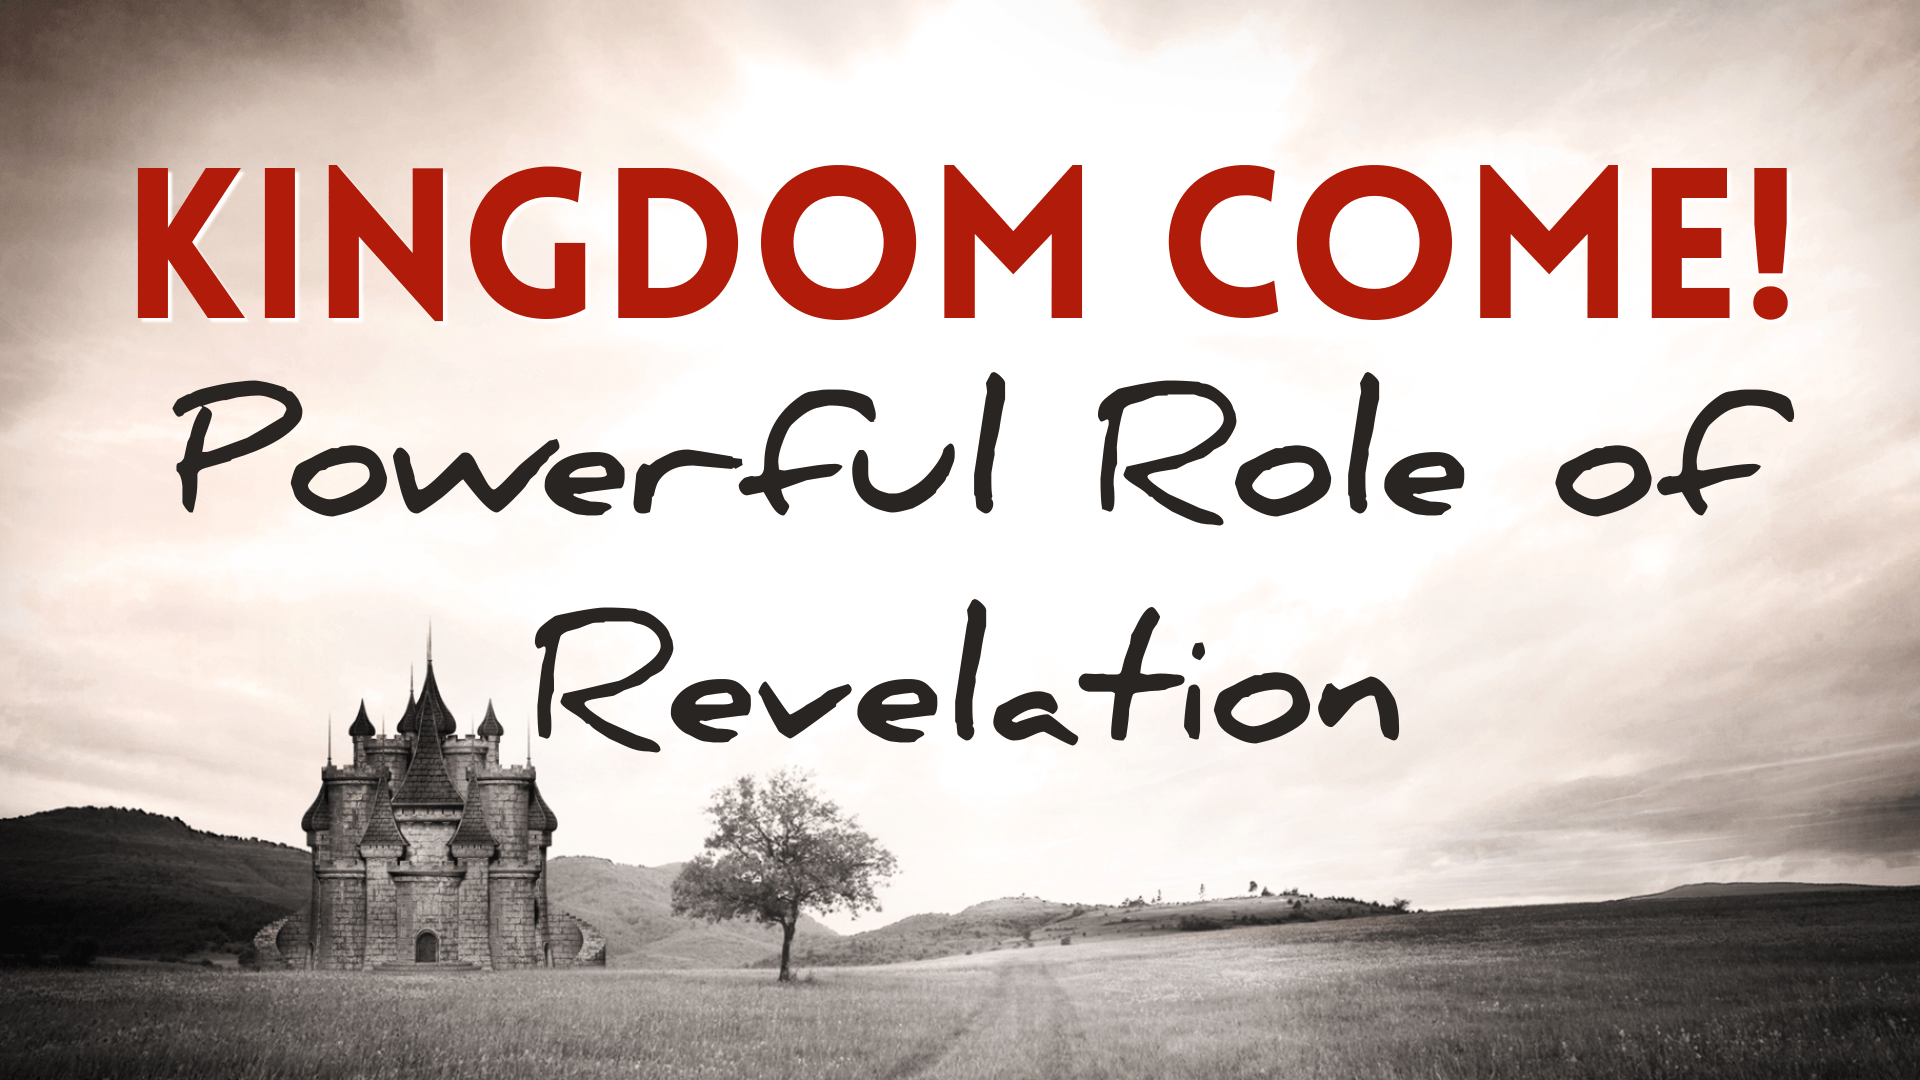 The Powerful Role of Revelation